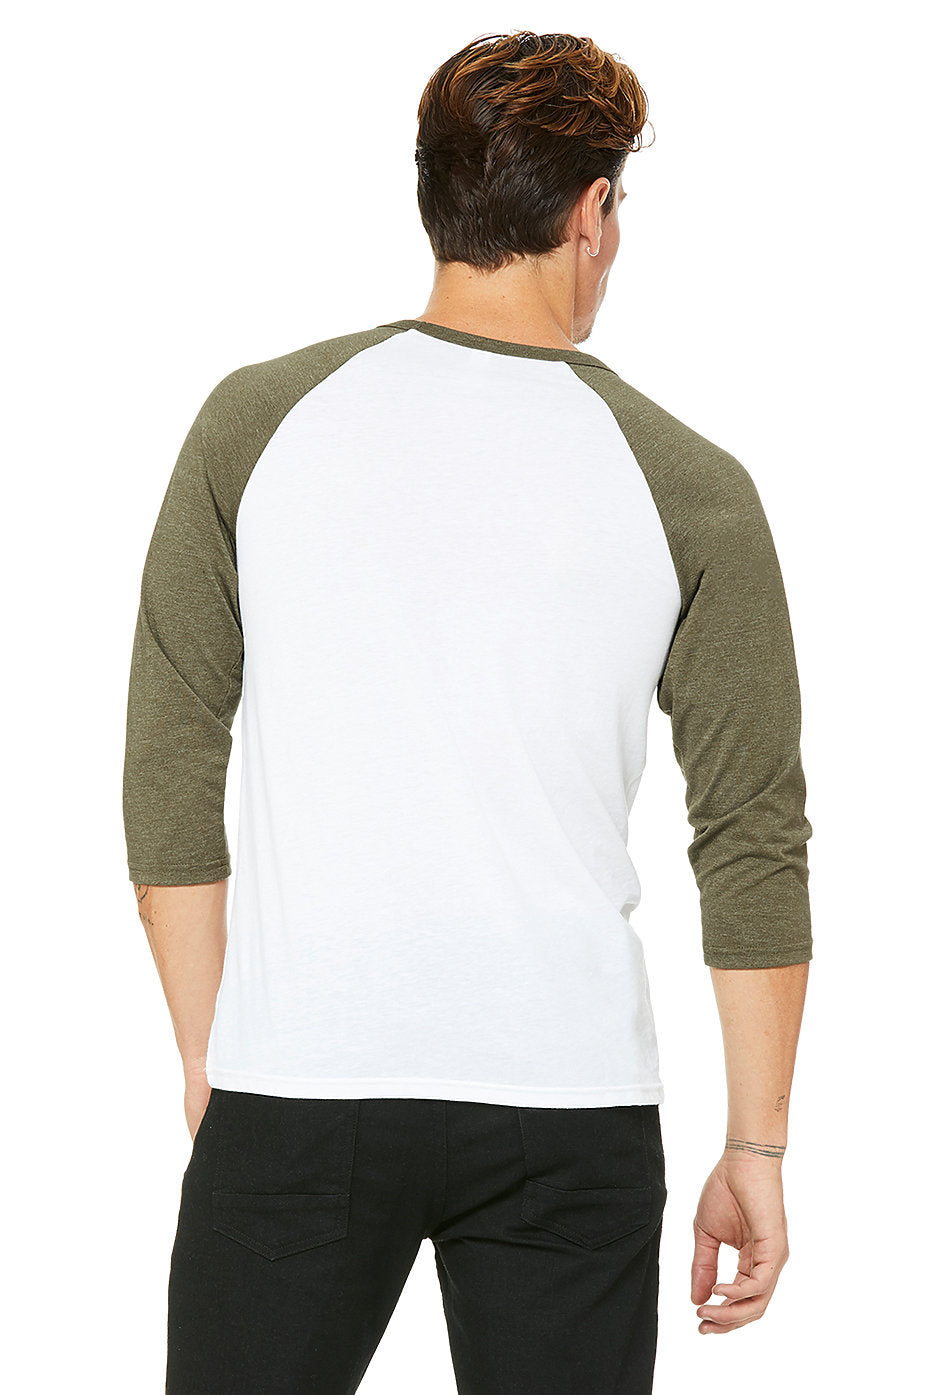 Baseball Tee (more colors)